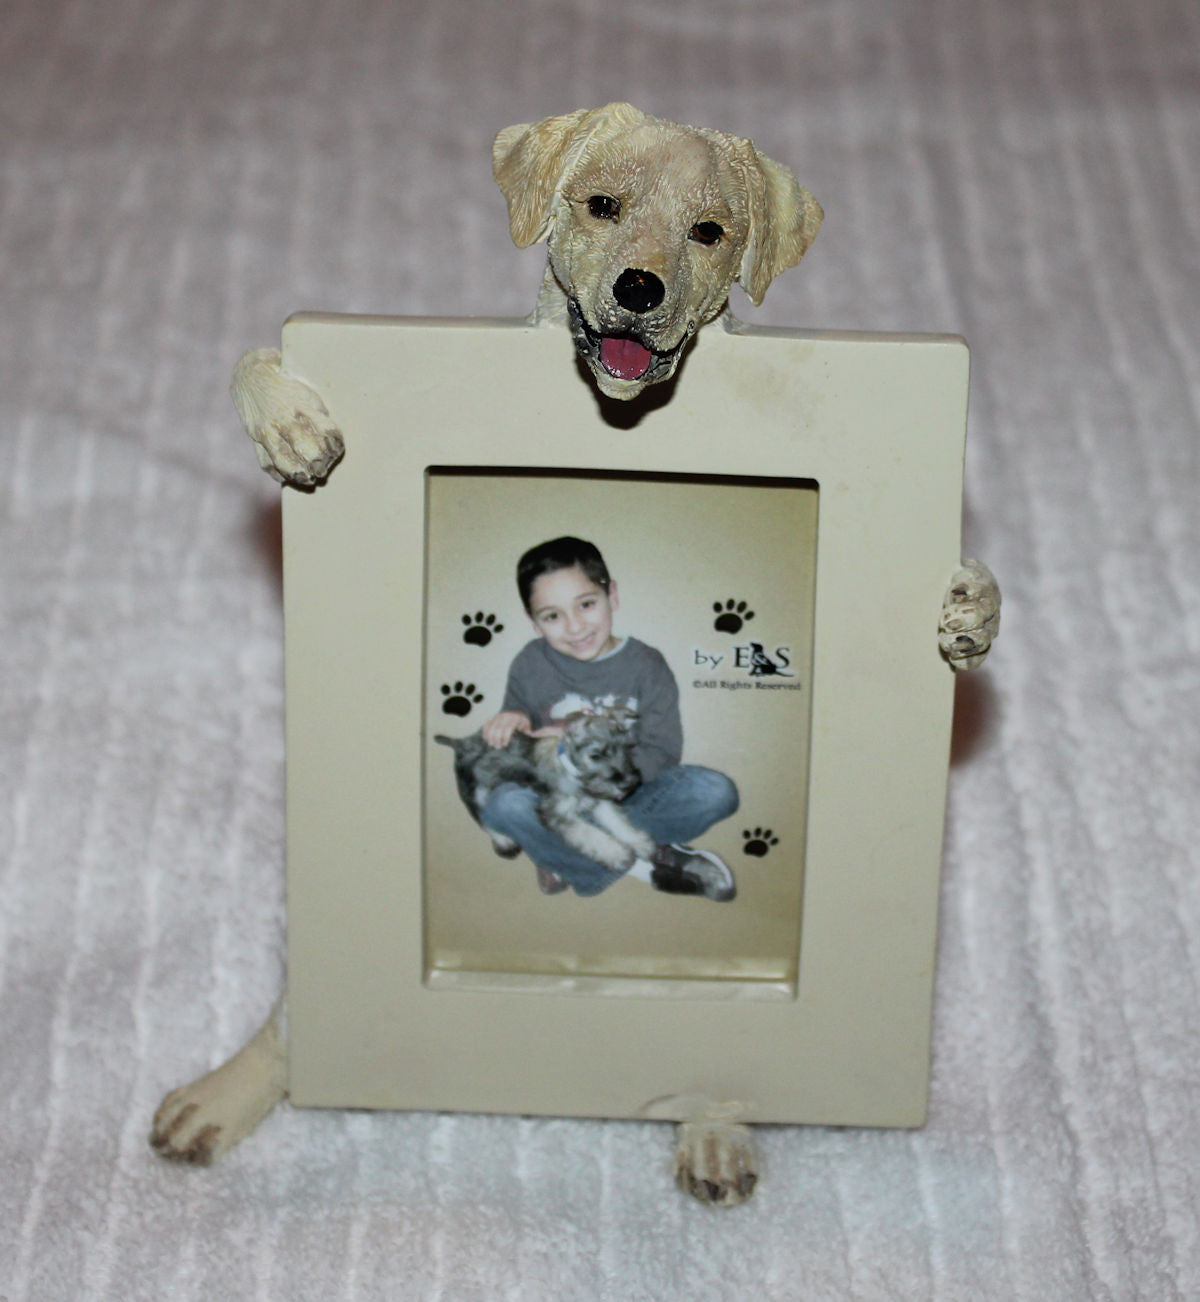 Yellow Labrador Dog Holding Picture Frame